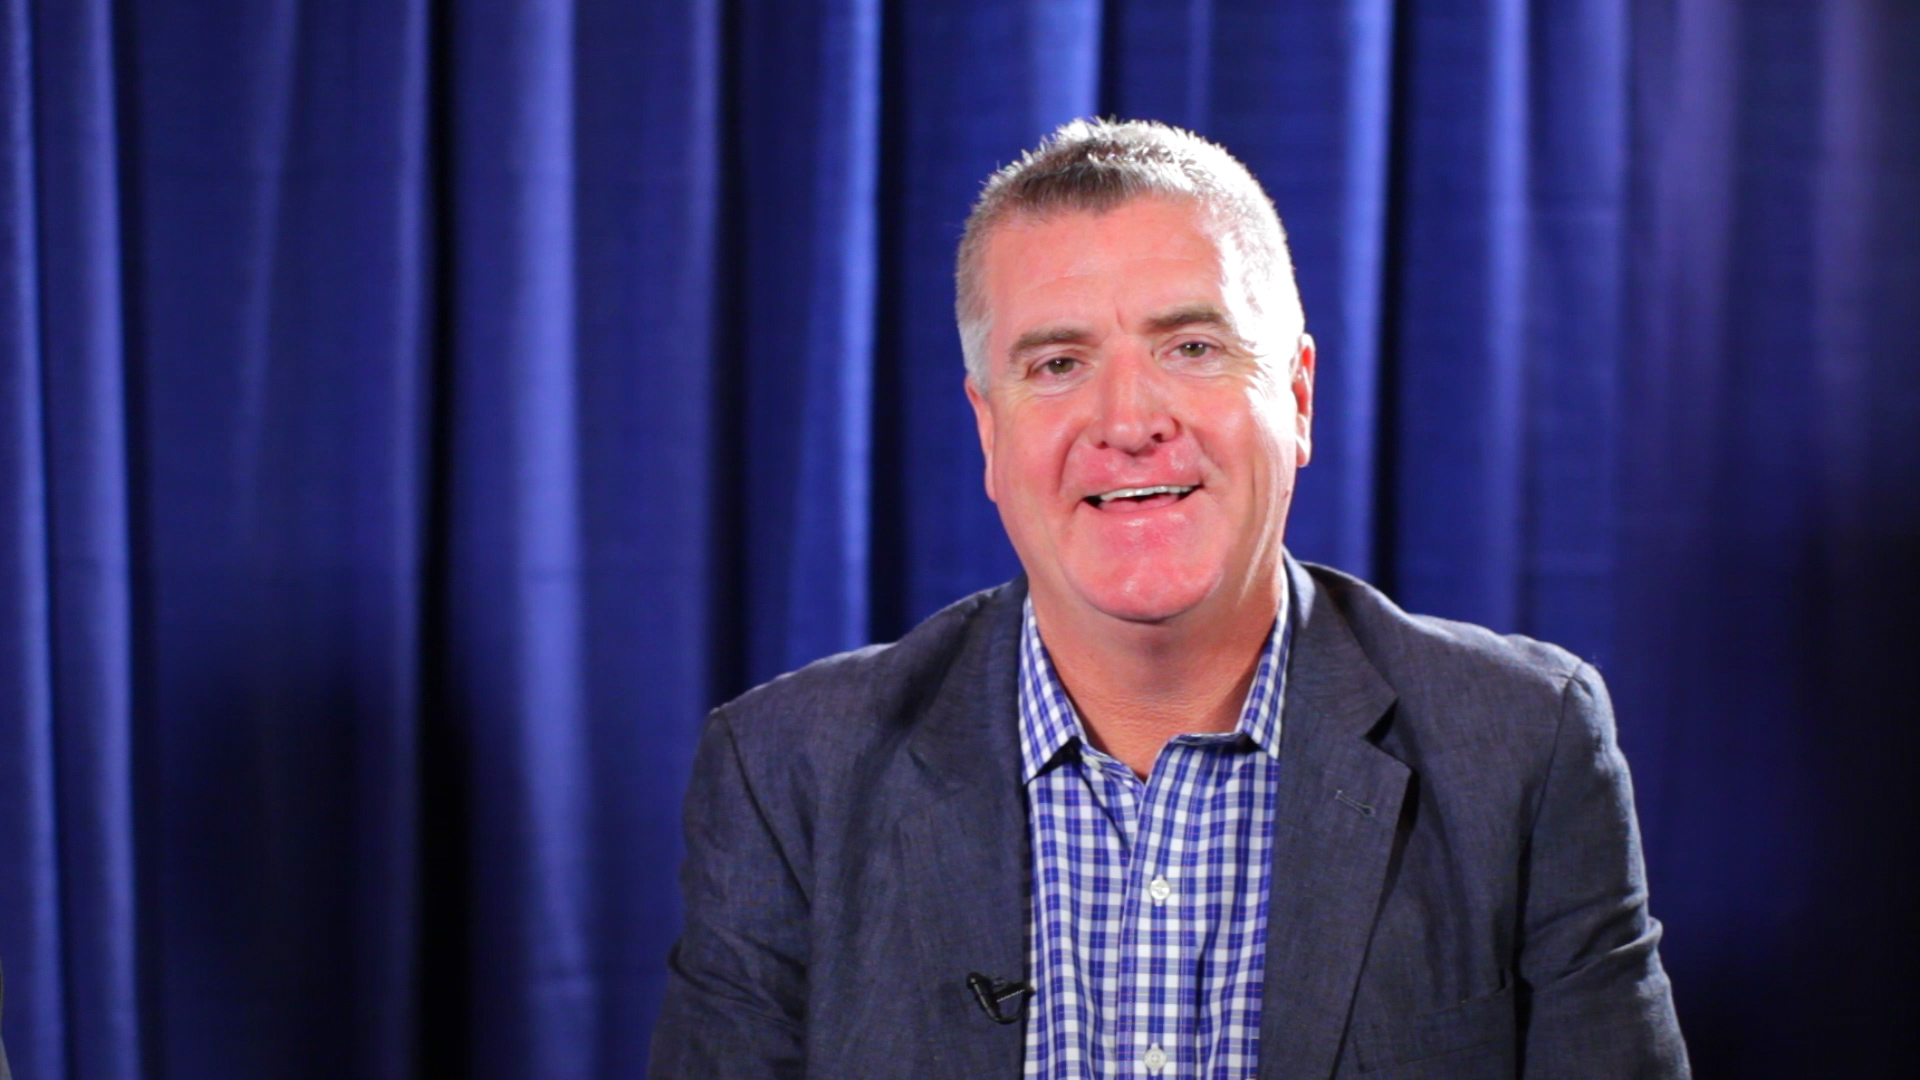 Video preview: interlinkONE CEO John Foley Highlights Opportunities in the Association Market